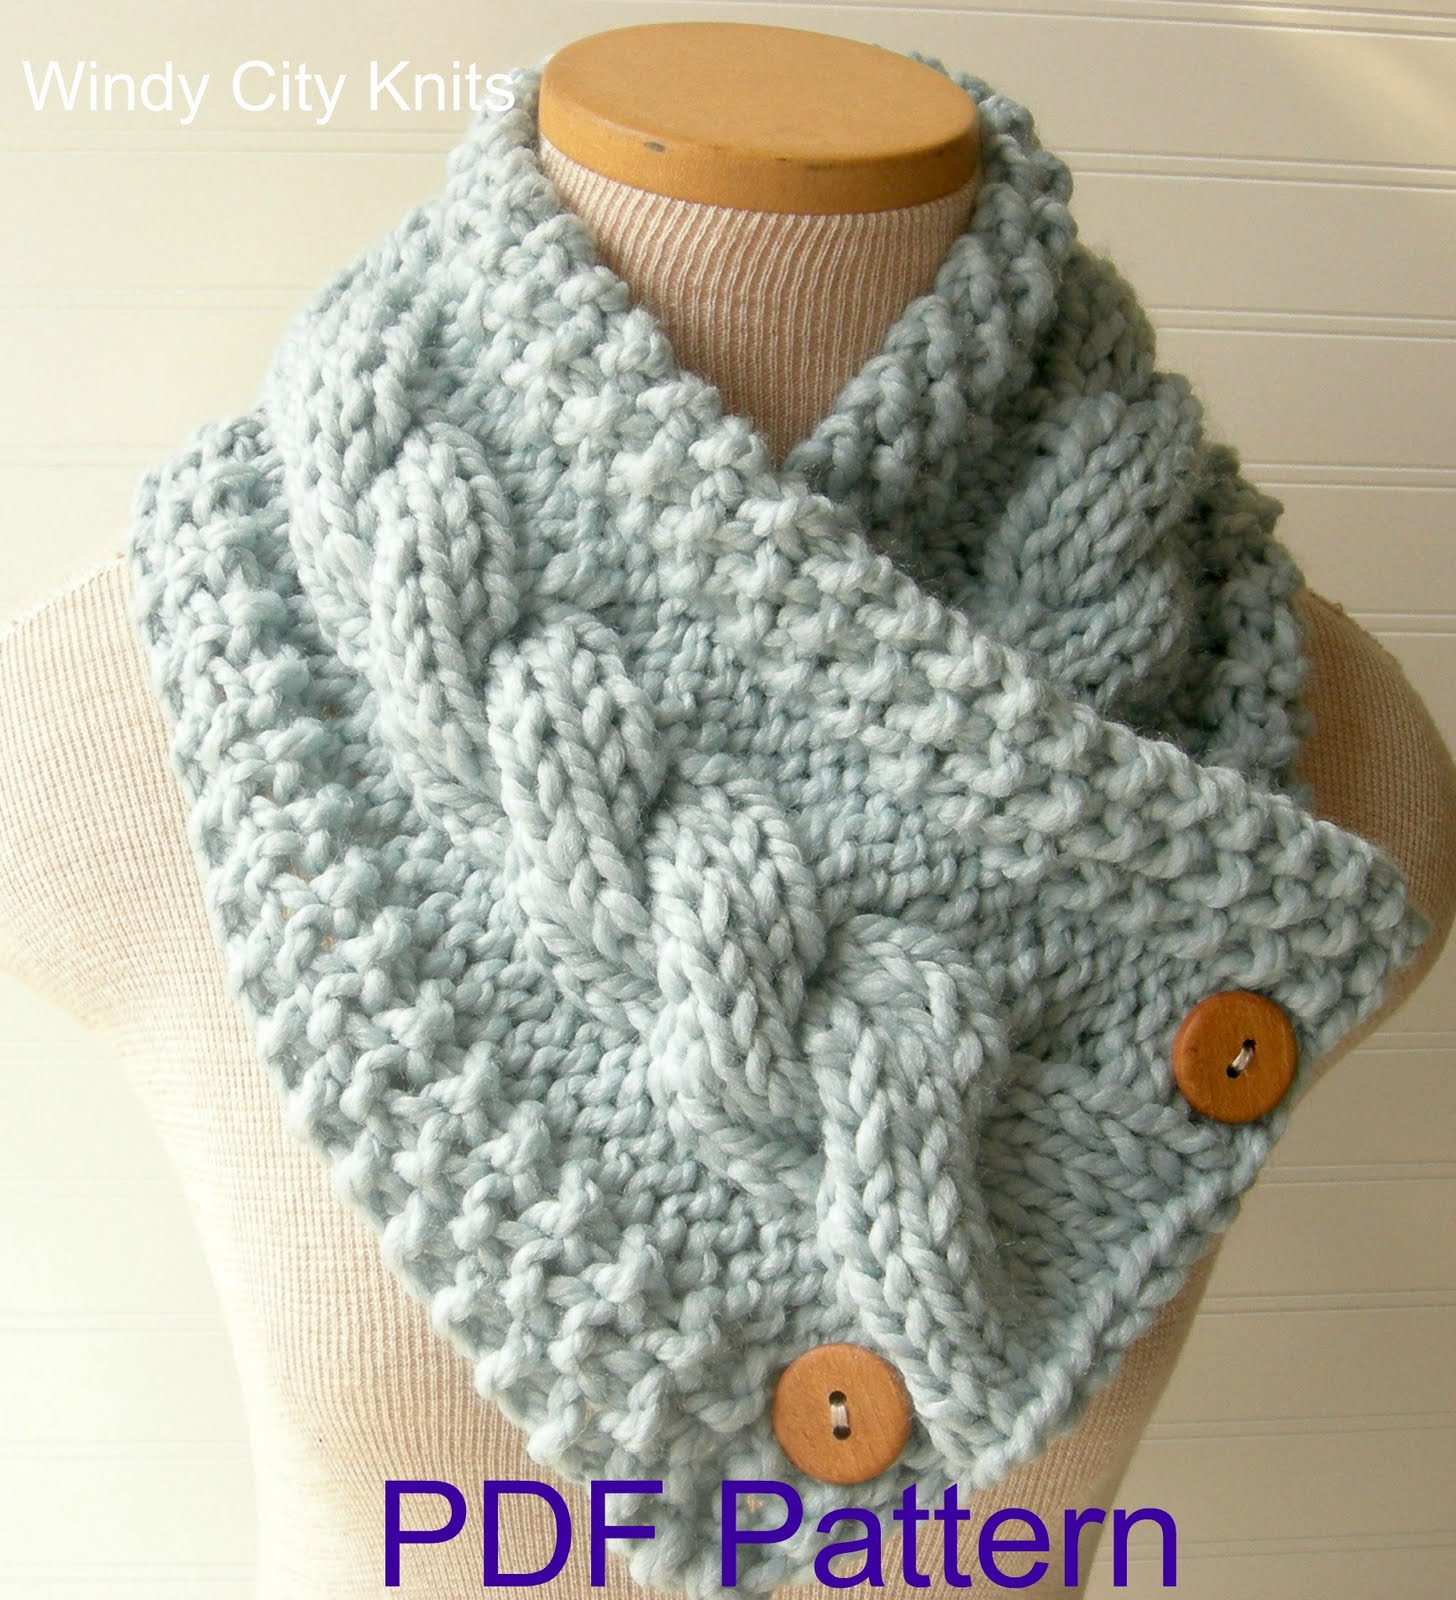 Free Cable Knitting Patterns For Scarves : WindyCityKnits: Knit Cable Cowl Scarf Pattern Pdf